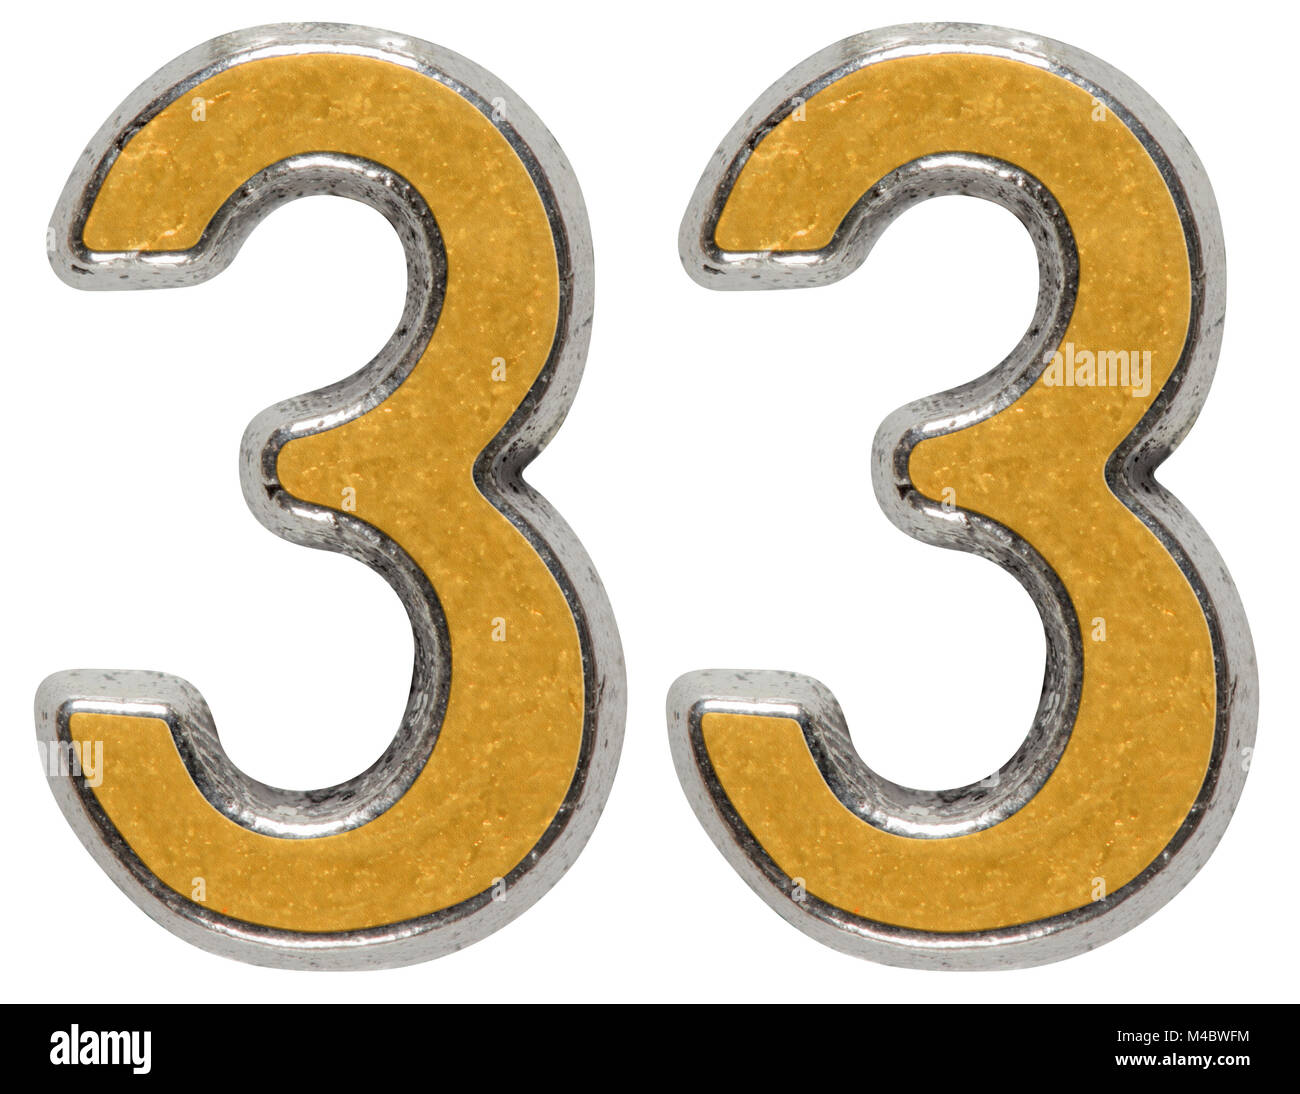 Metal numeral 33, thirty-three, isolated on white background - Stock Image